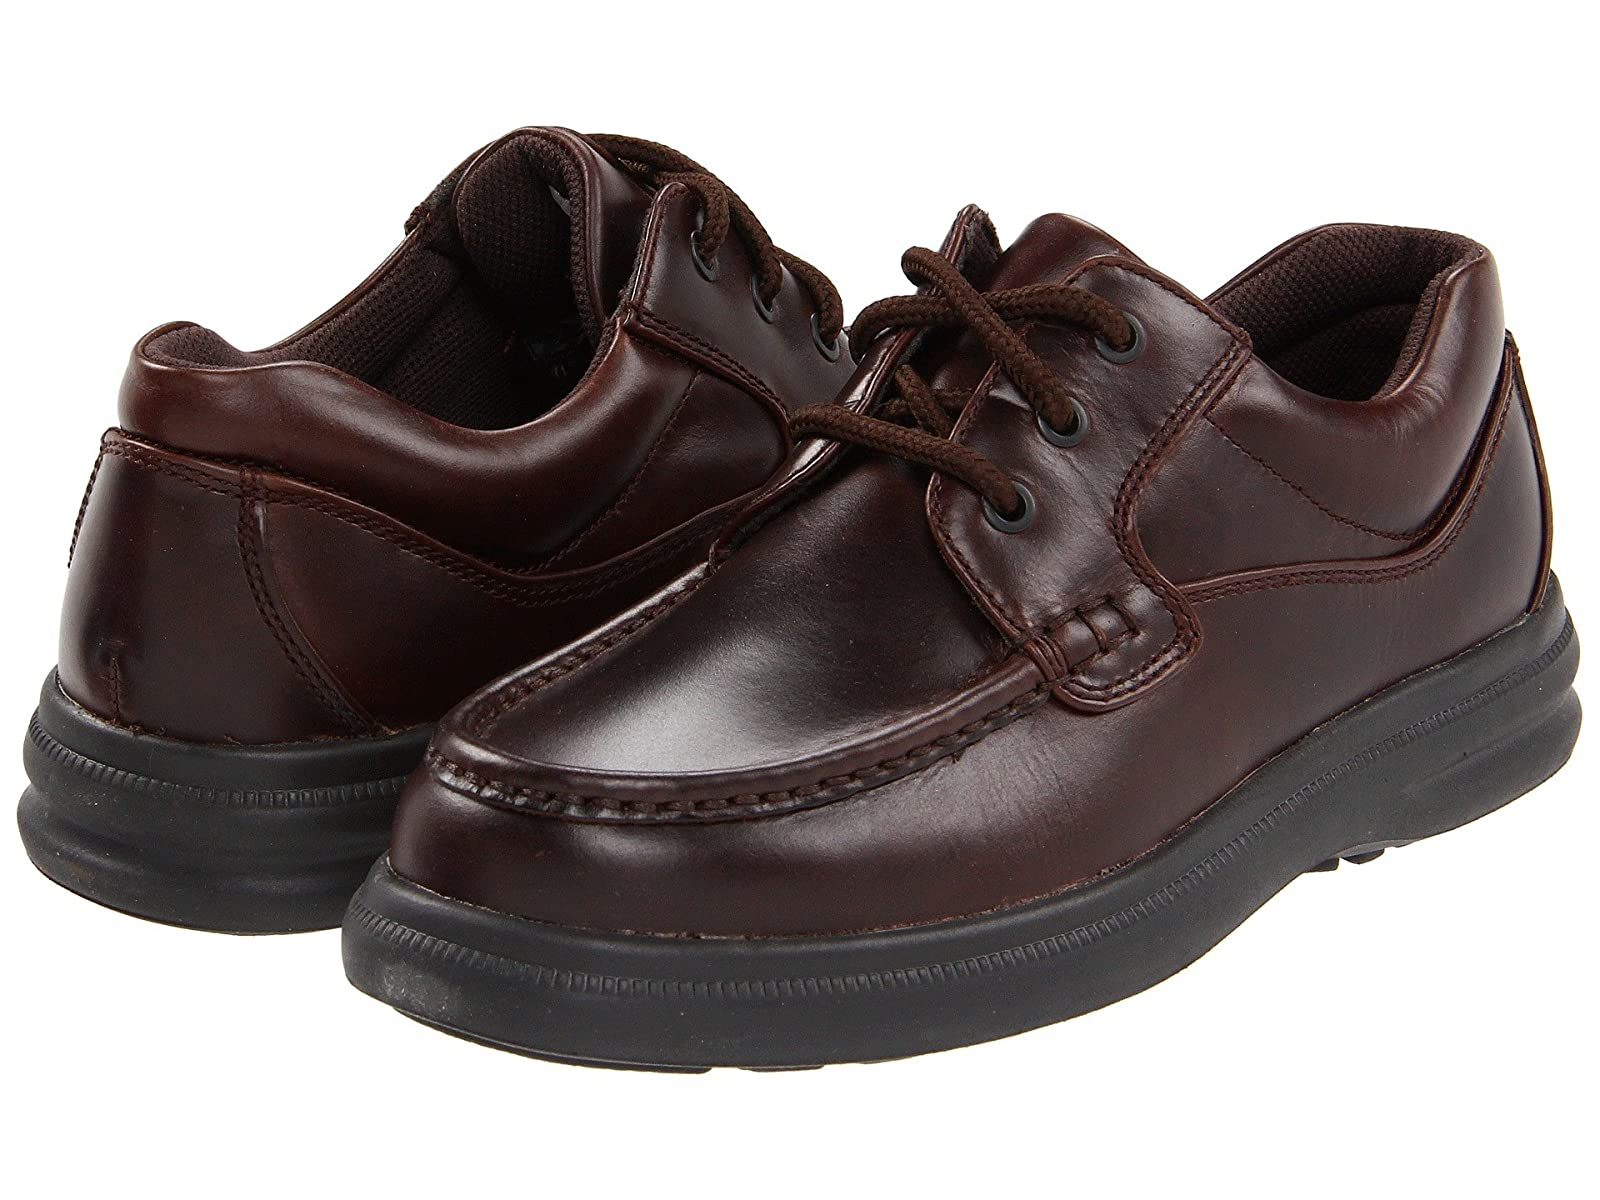 Hush Puppies GusAtmospheric grades have affordable shoes